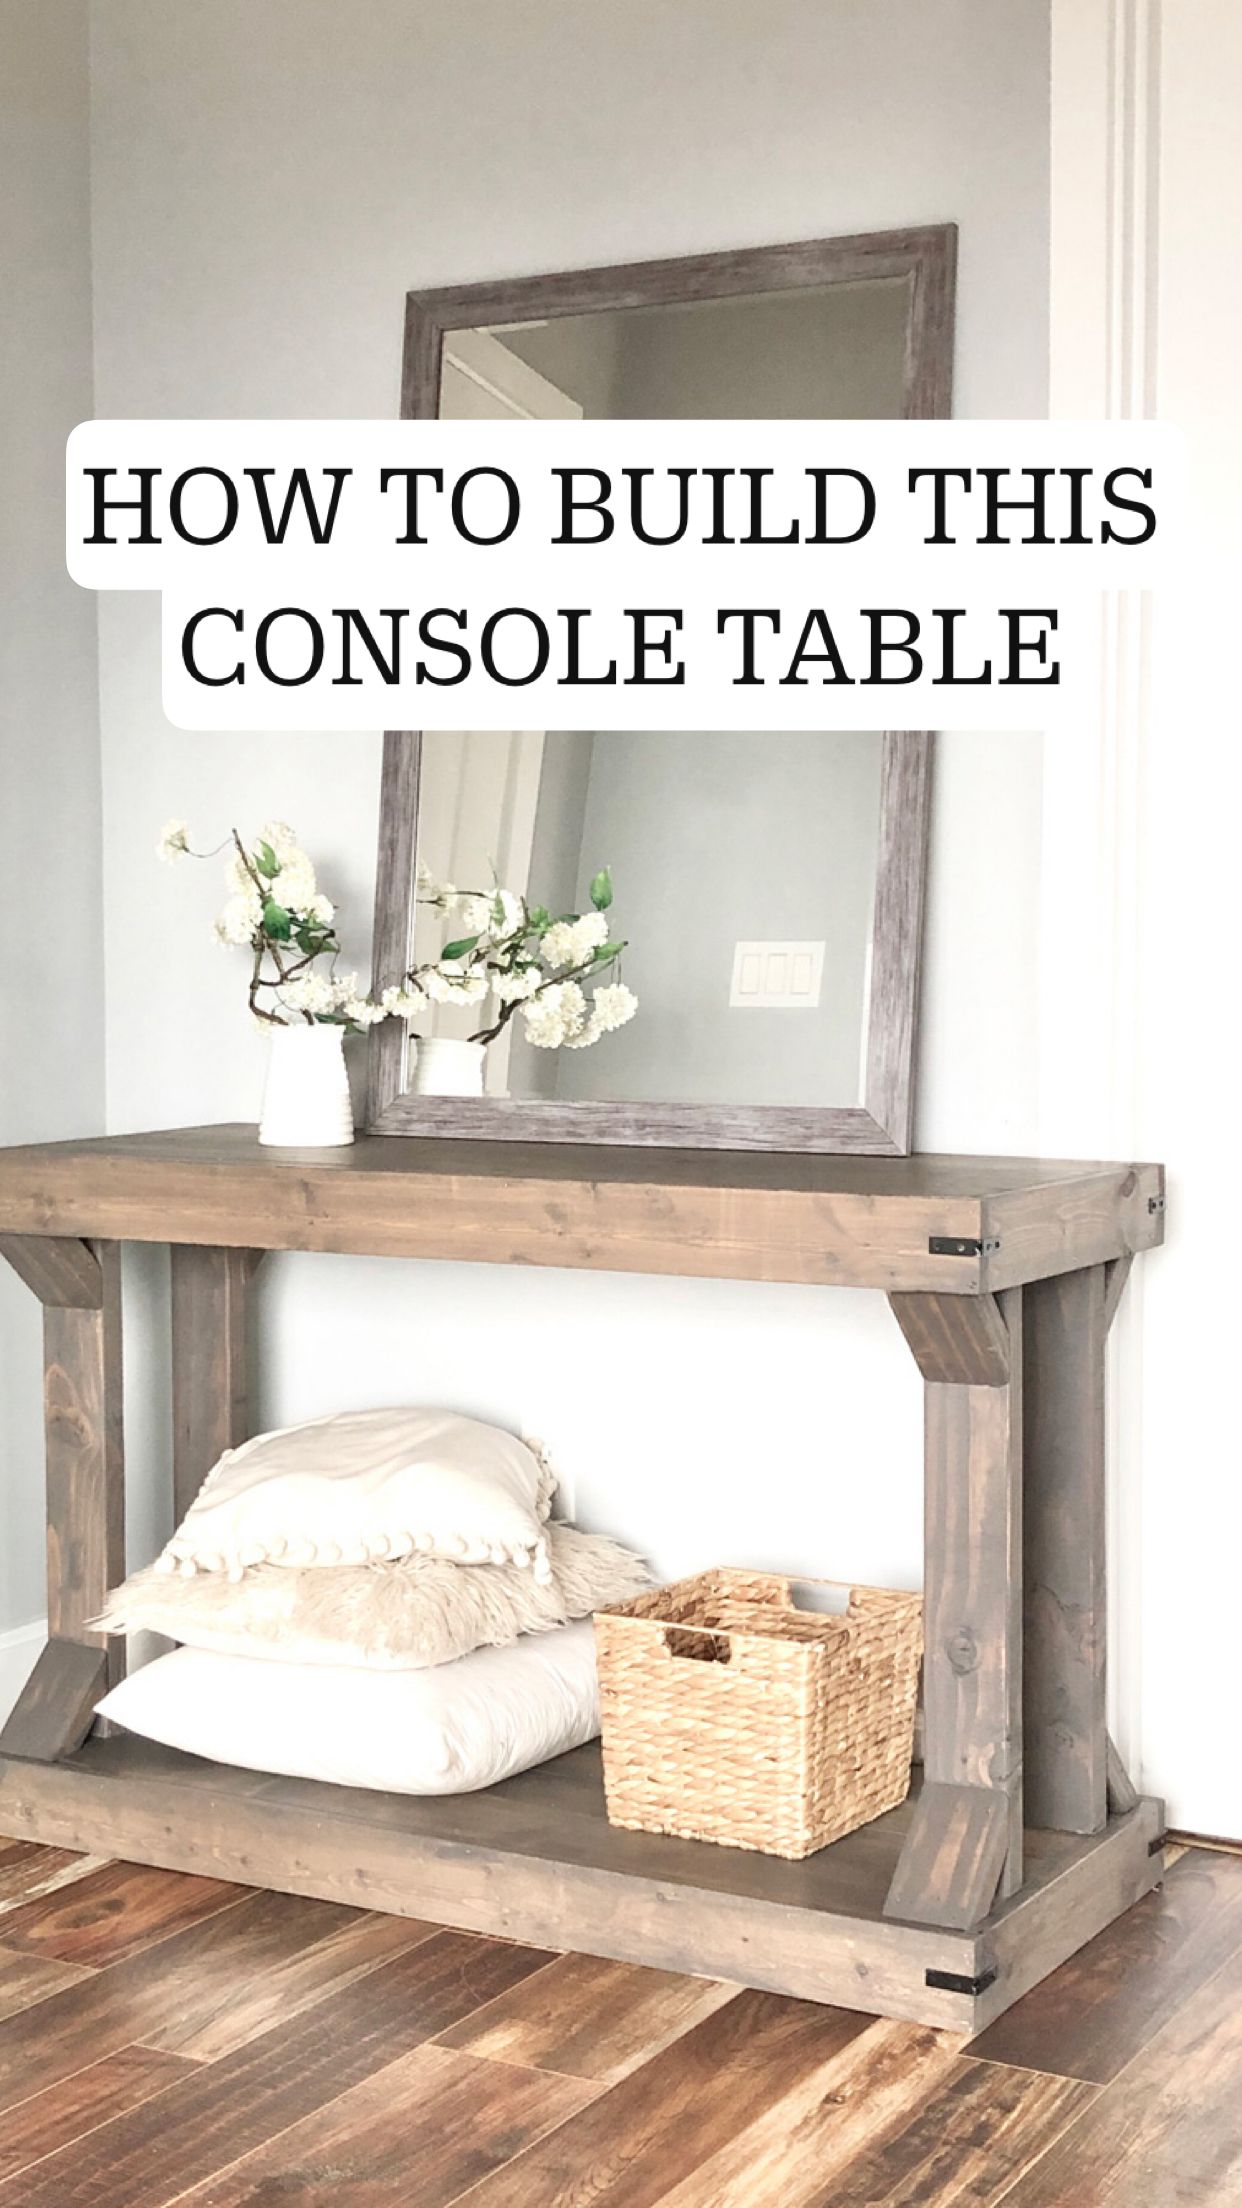 HOW TO BUILD THIS CONSOLE TABLE